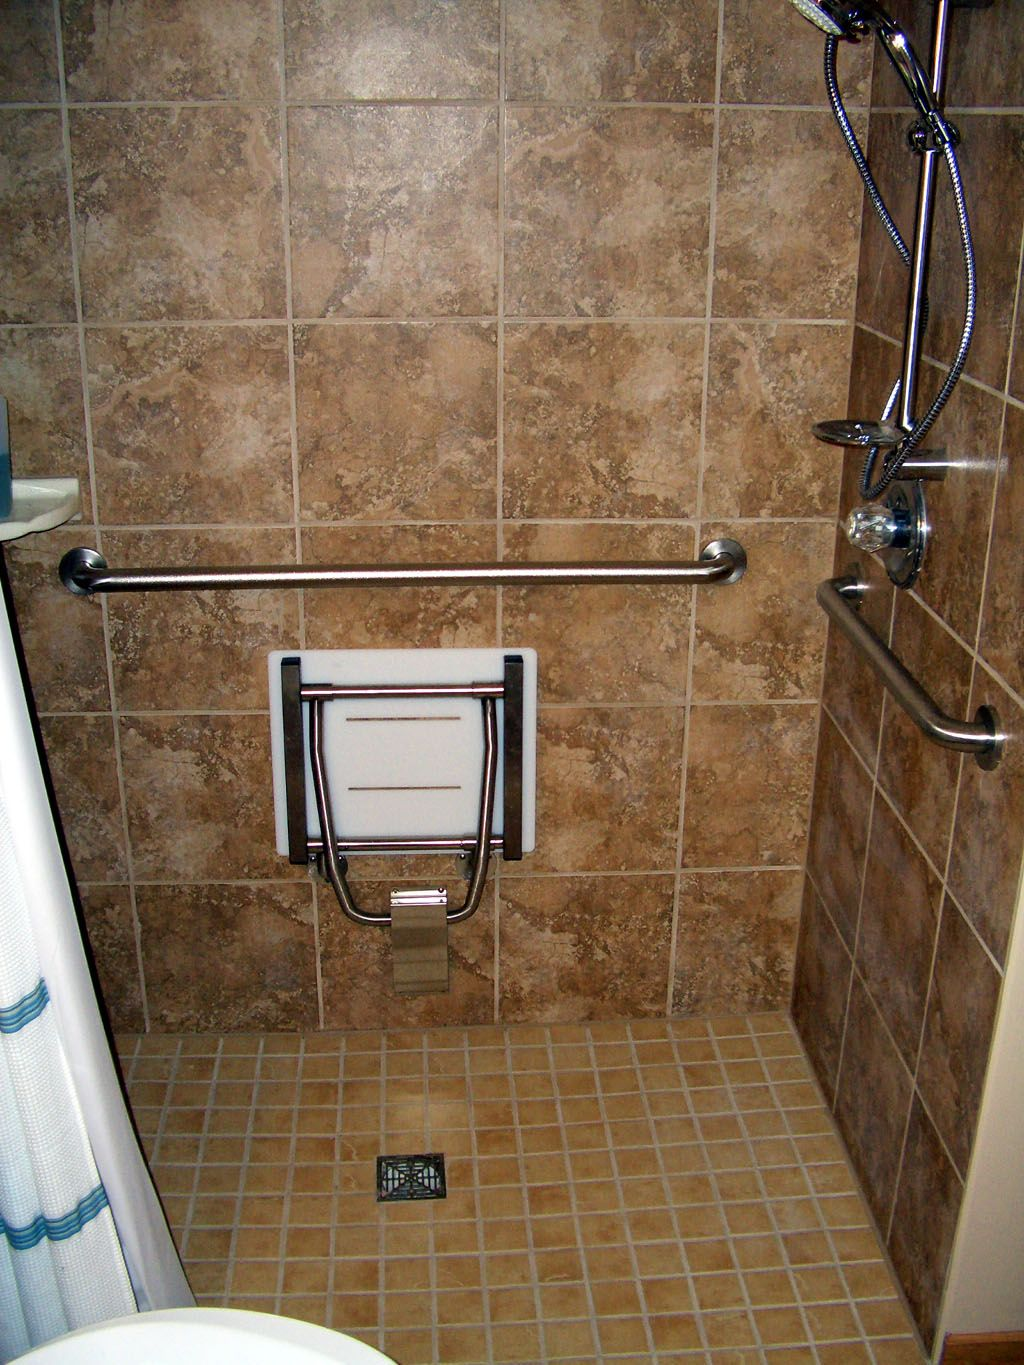 Disability Remodeling | Wheel Chair Handicap Access Minneapolis .